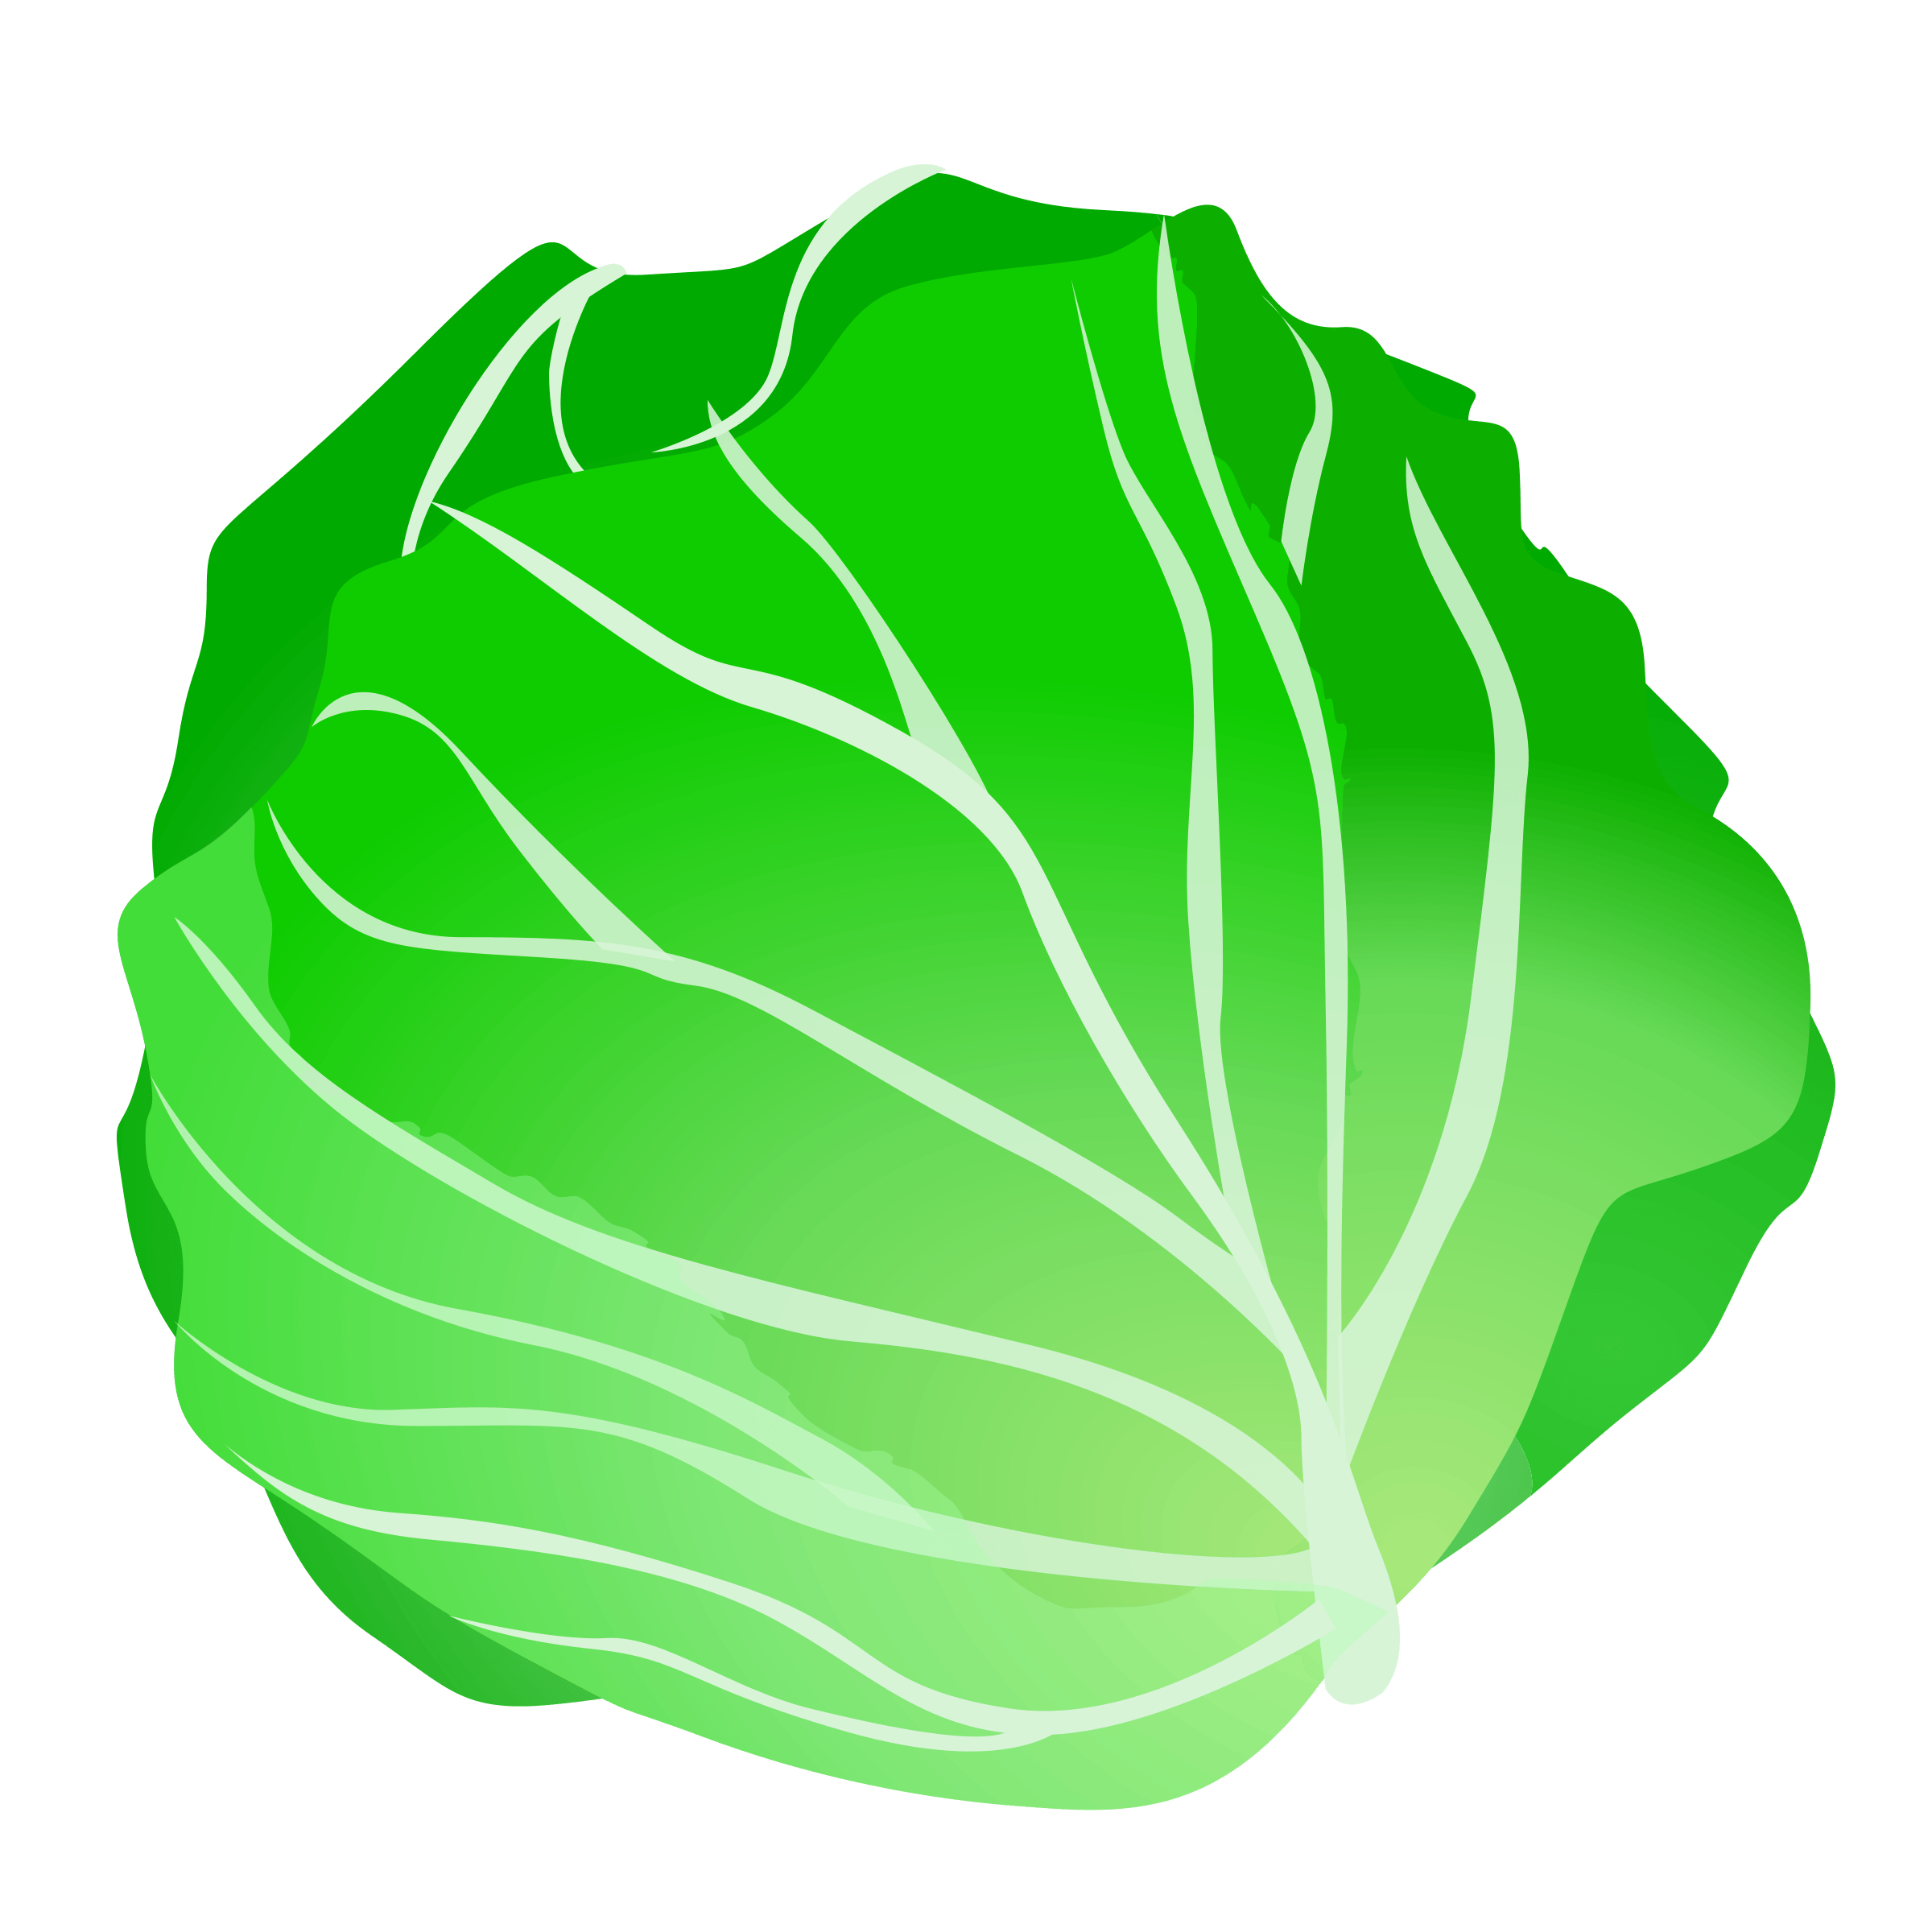 Cabbage clipart sawi. Cliparts zone